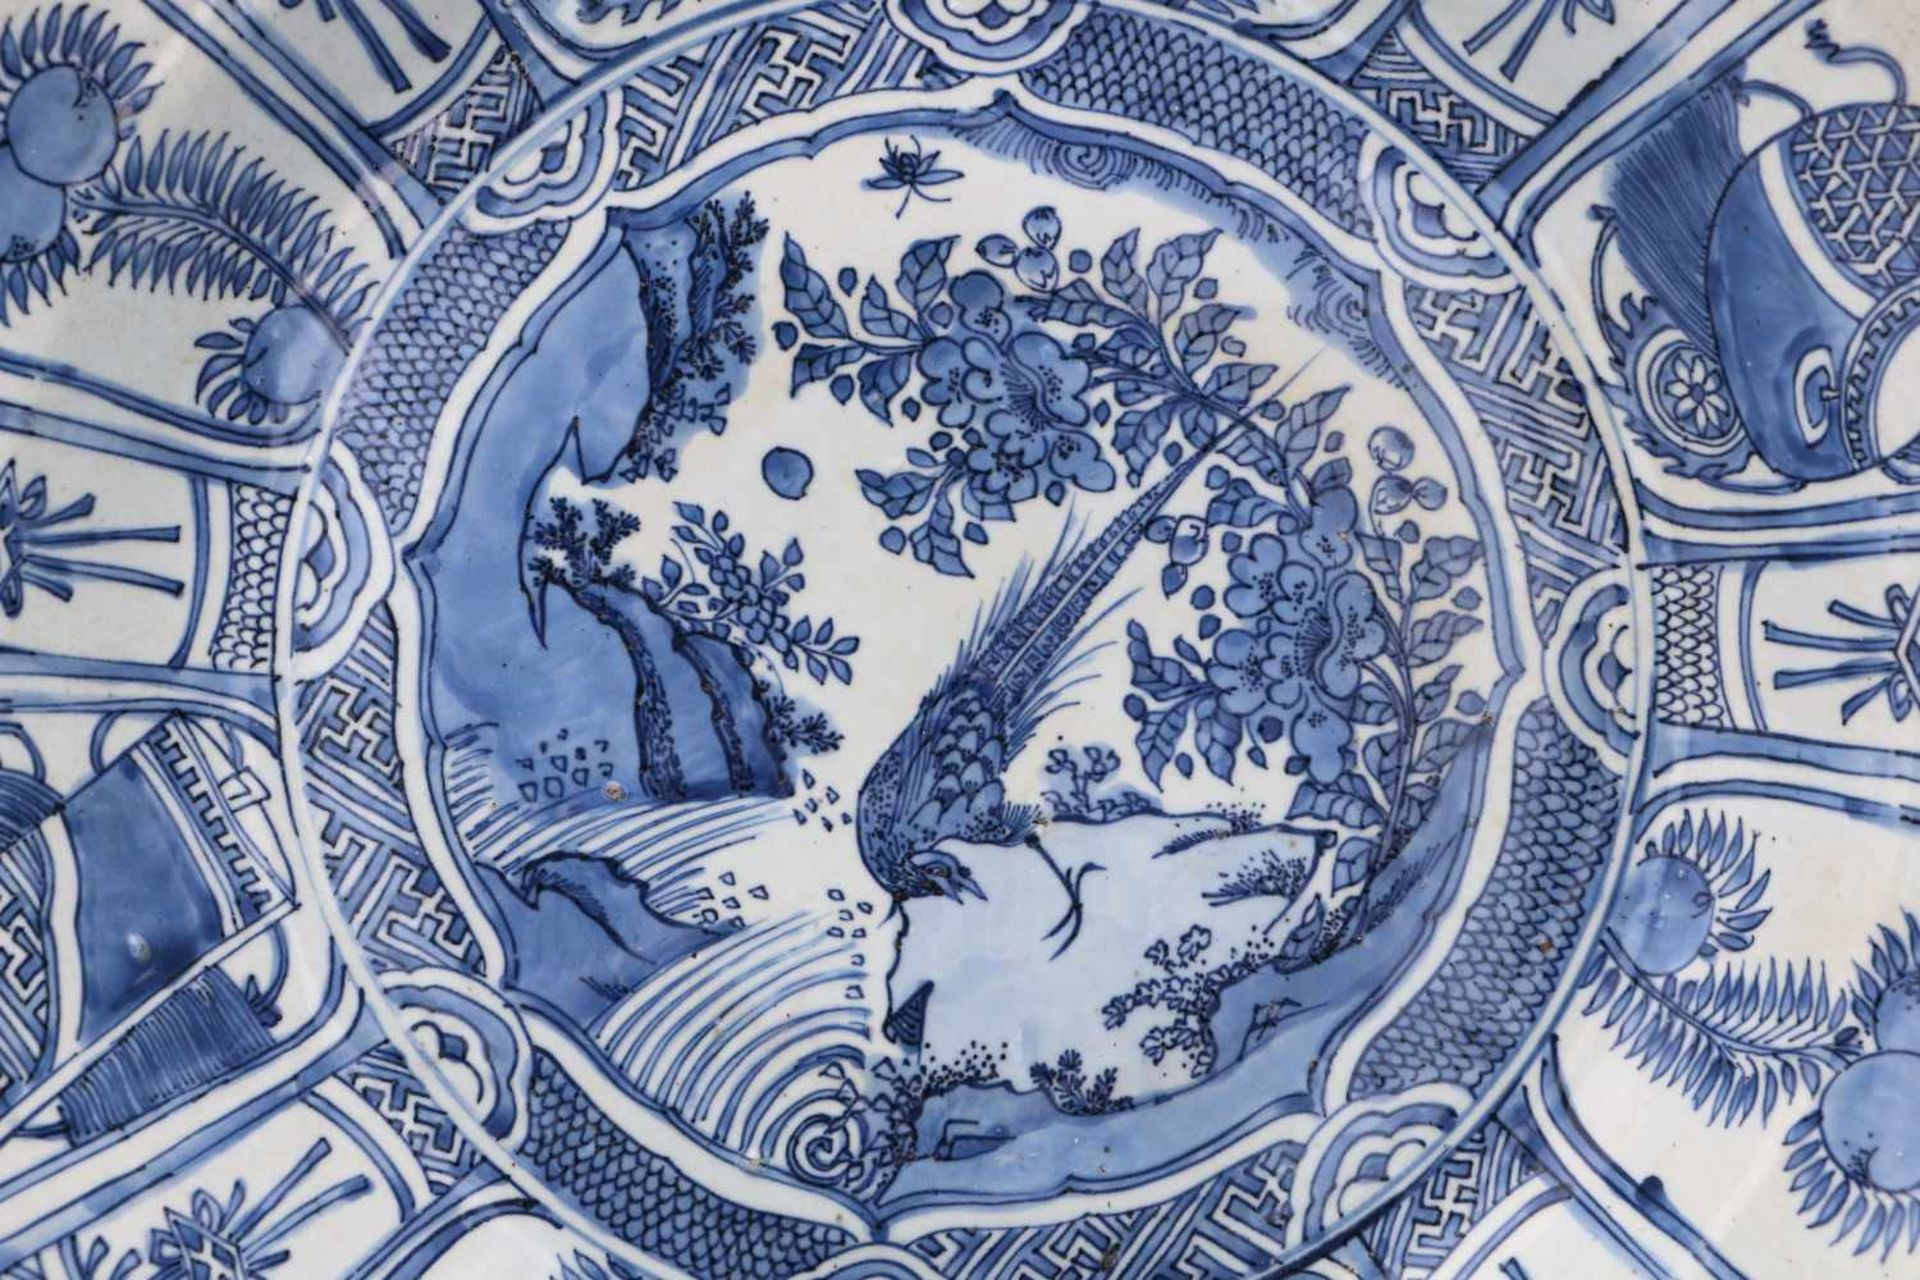 A blue and white 'kraak' porcelain deep charger, decorated with a silver pheasant, fruits, - Bild 3 aus 3